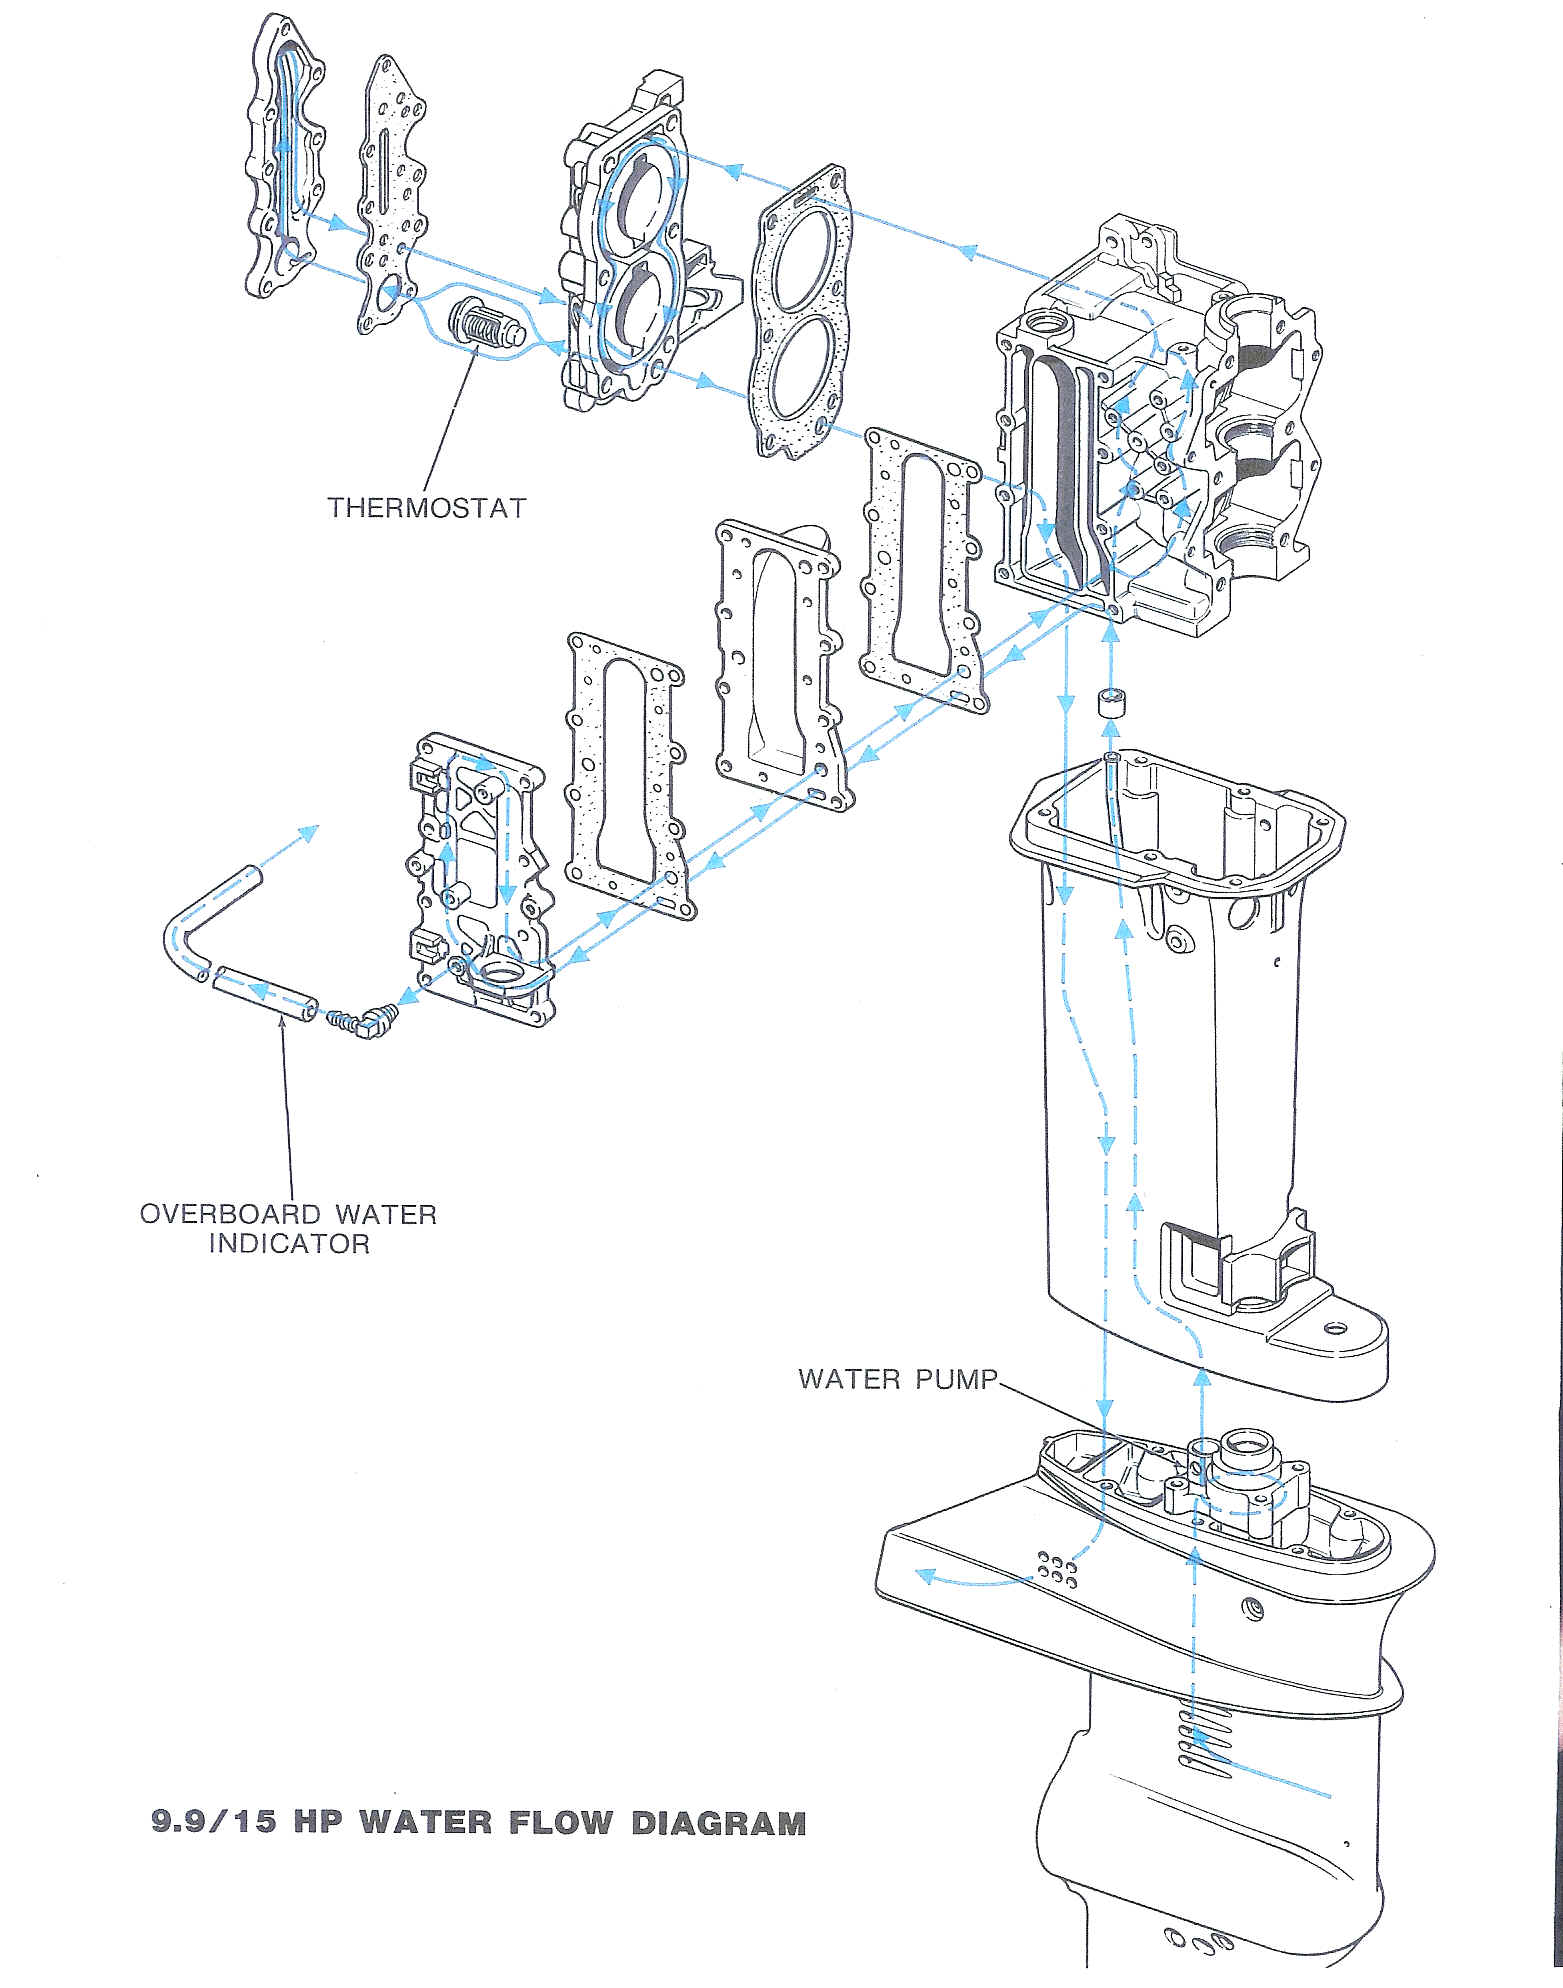 water_passage maintaining johnson evinrude 9 9 part 1 50 HP Mercury Outboard Wiring Diagram at edmiracle.co